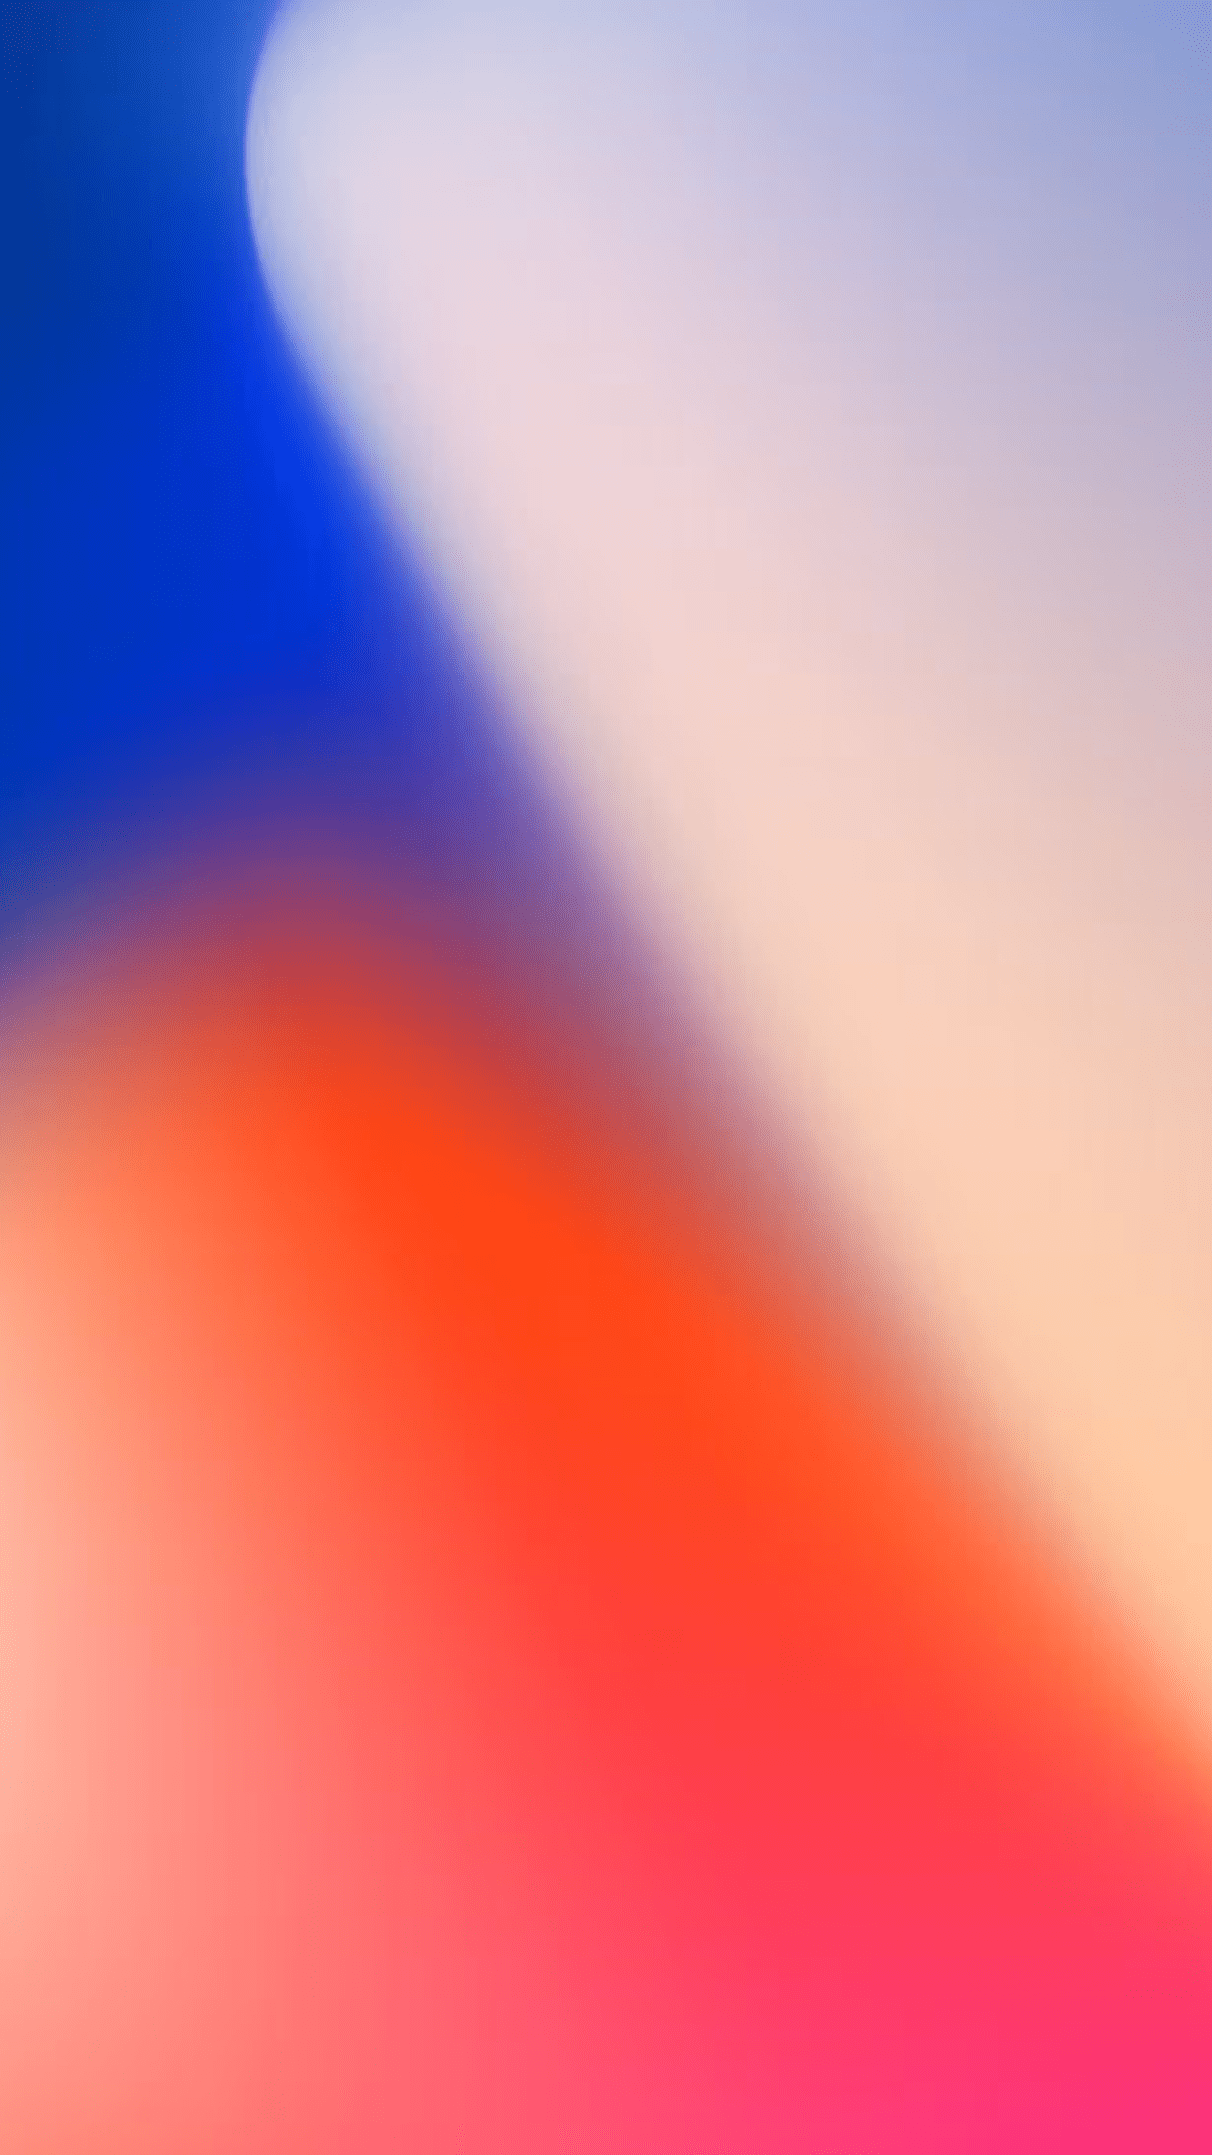 Apple-Event-Wallpaper-iPhone-8-iDownloadBlog-AR7-iPhone-no-logo